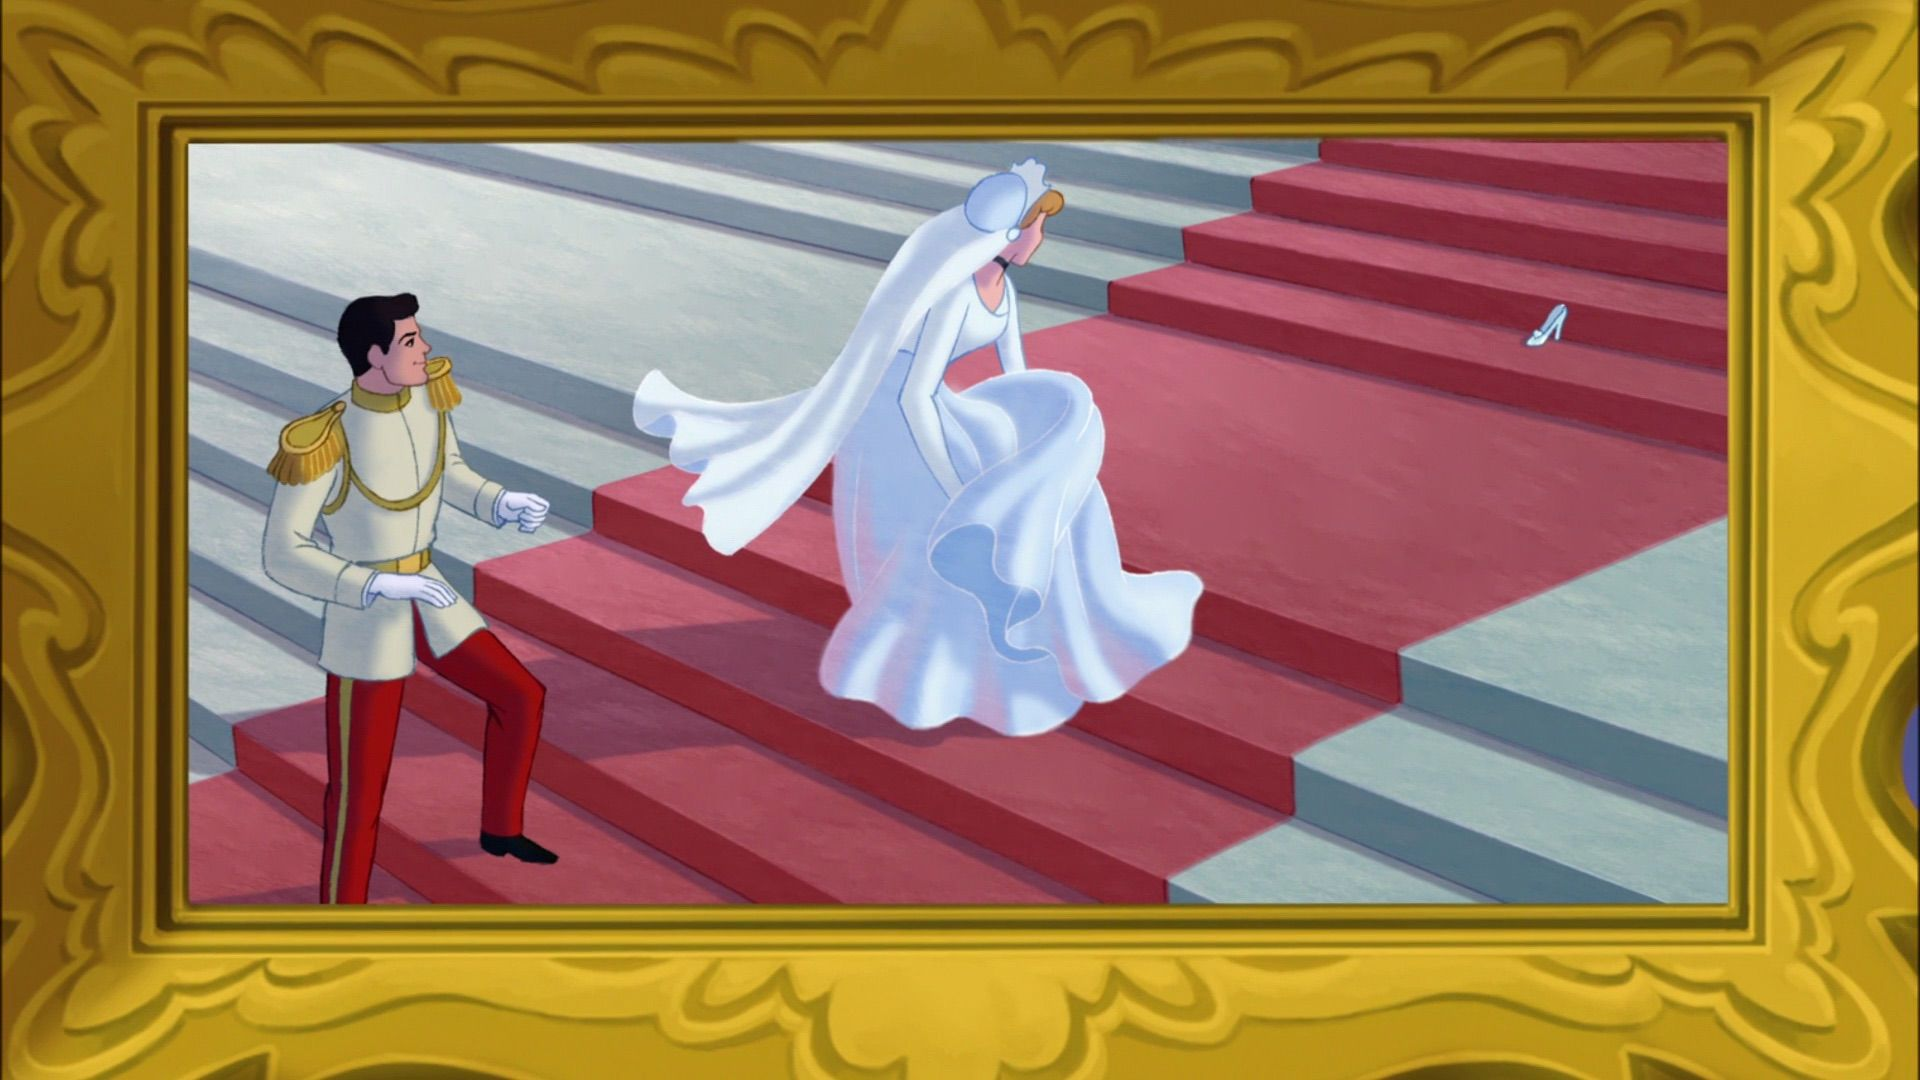 Royal Portrait Of Cinderella And Prince Charming S Wedding Day